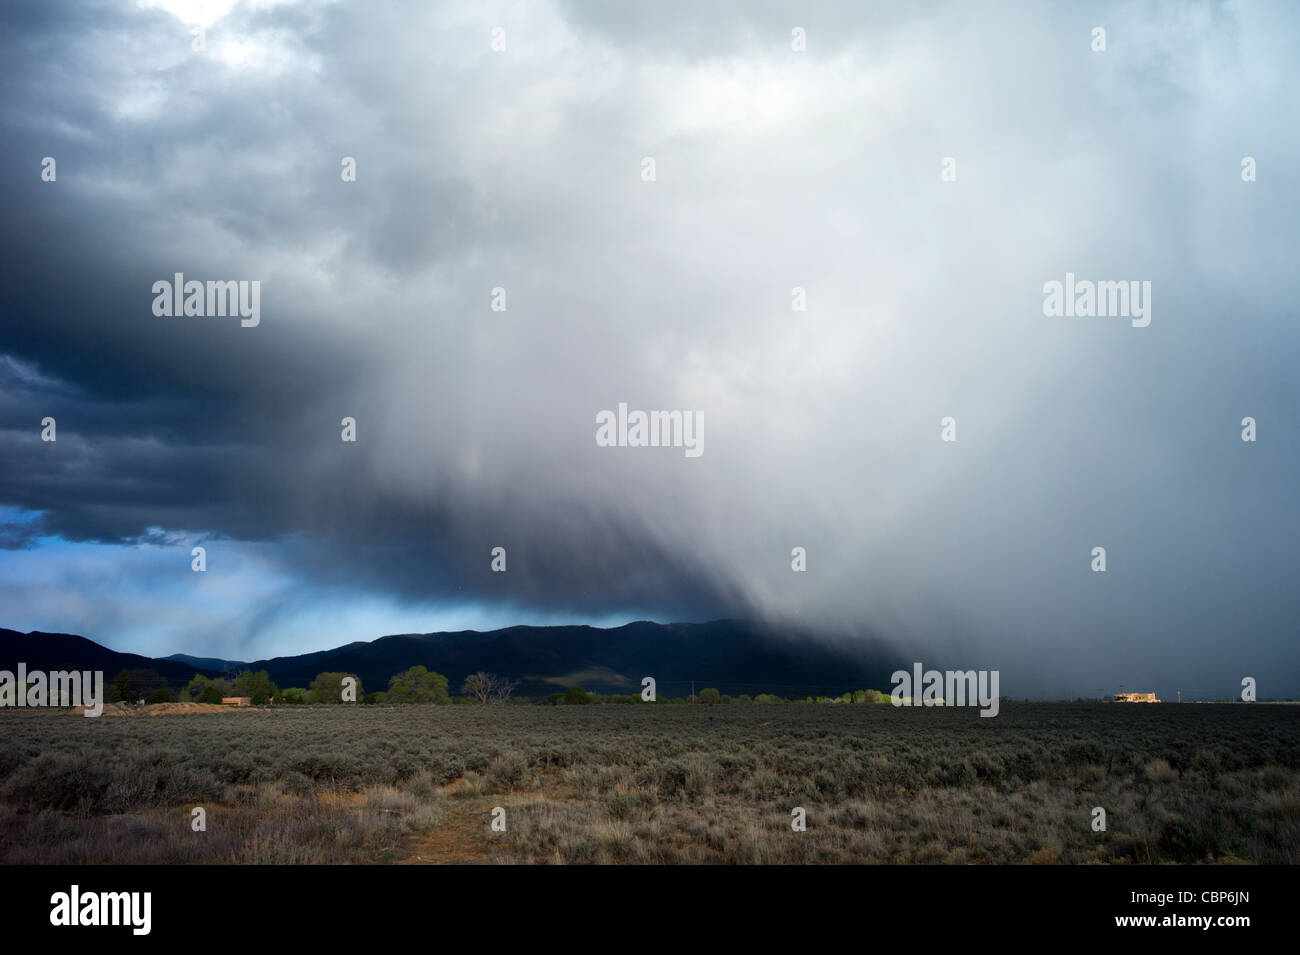 Squall over Taos, New Mexico, USA - Stock Image